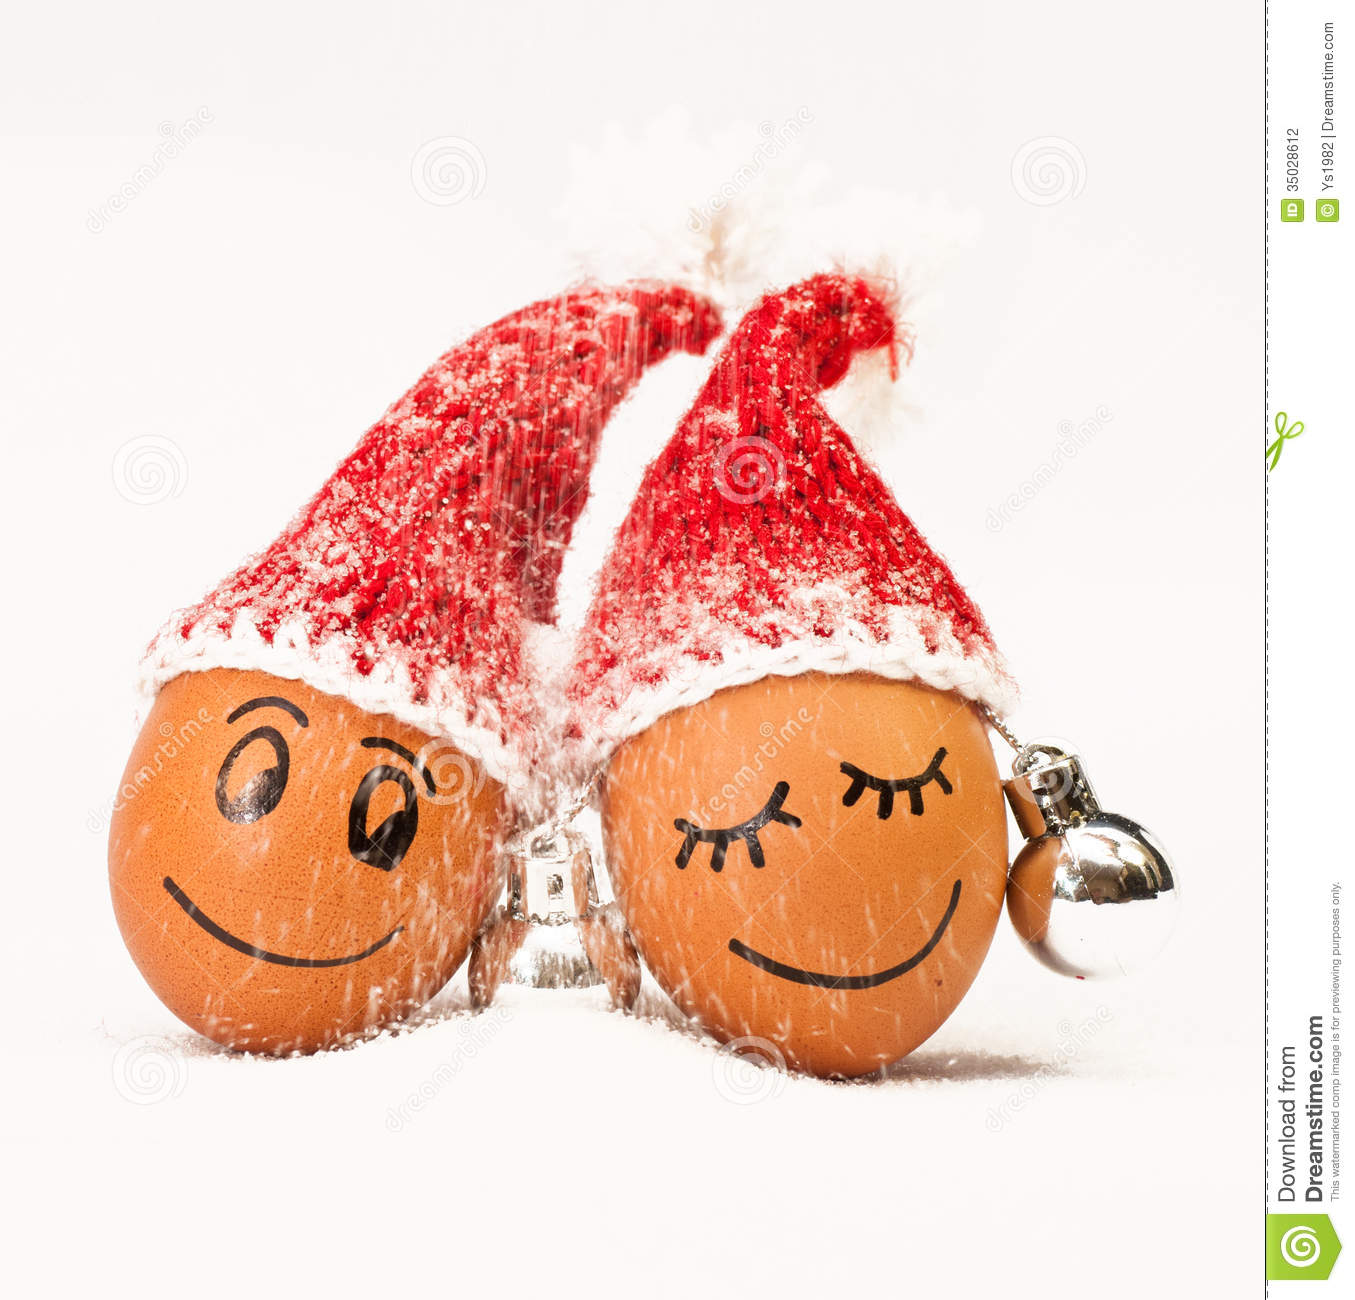 e0ff1519d3912 Funny lovely eggs in winter santa hats. sugar like a snowflakes. together  is more warmer.